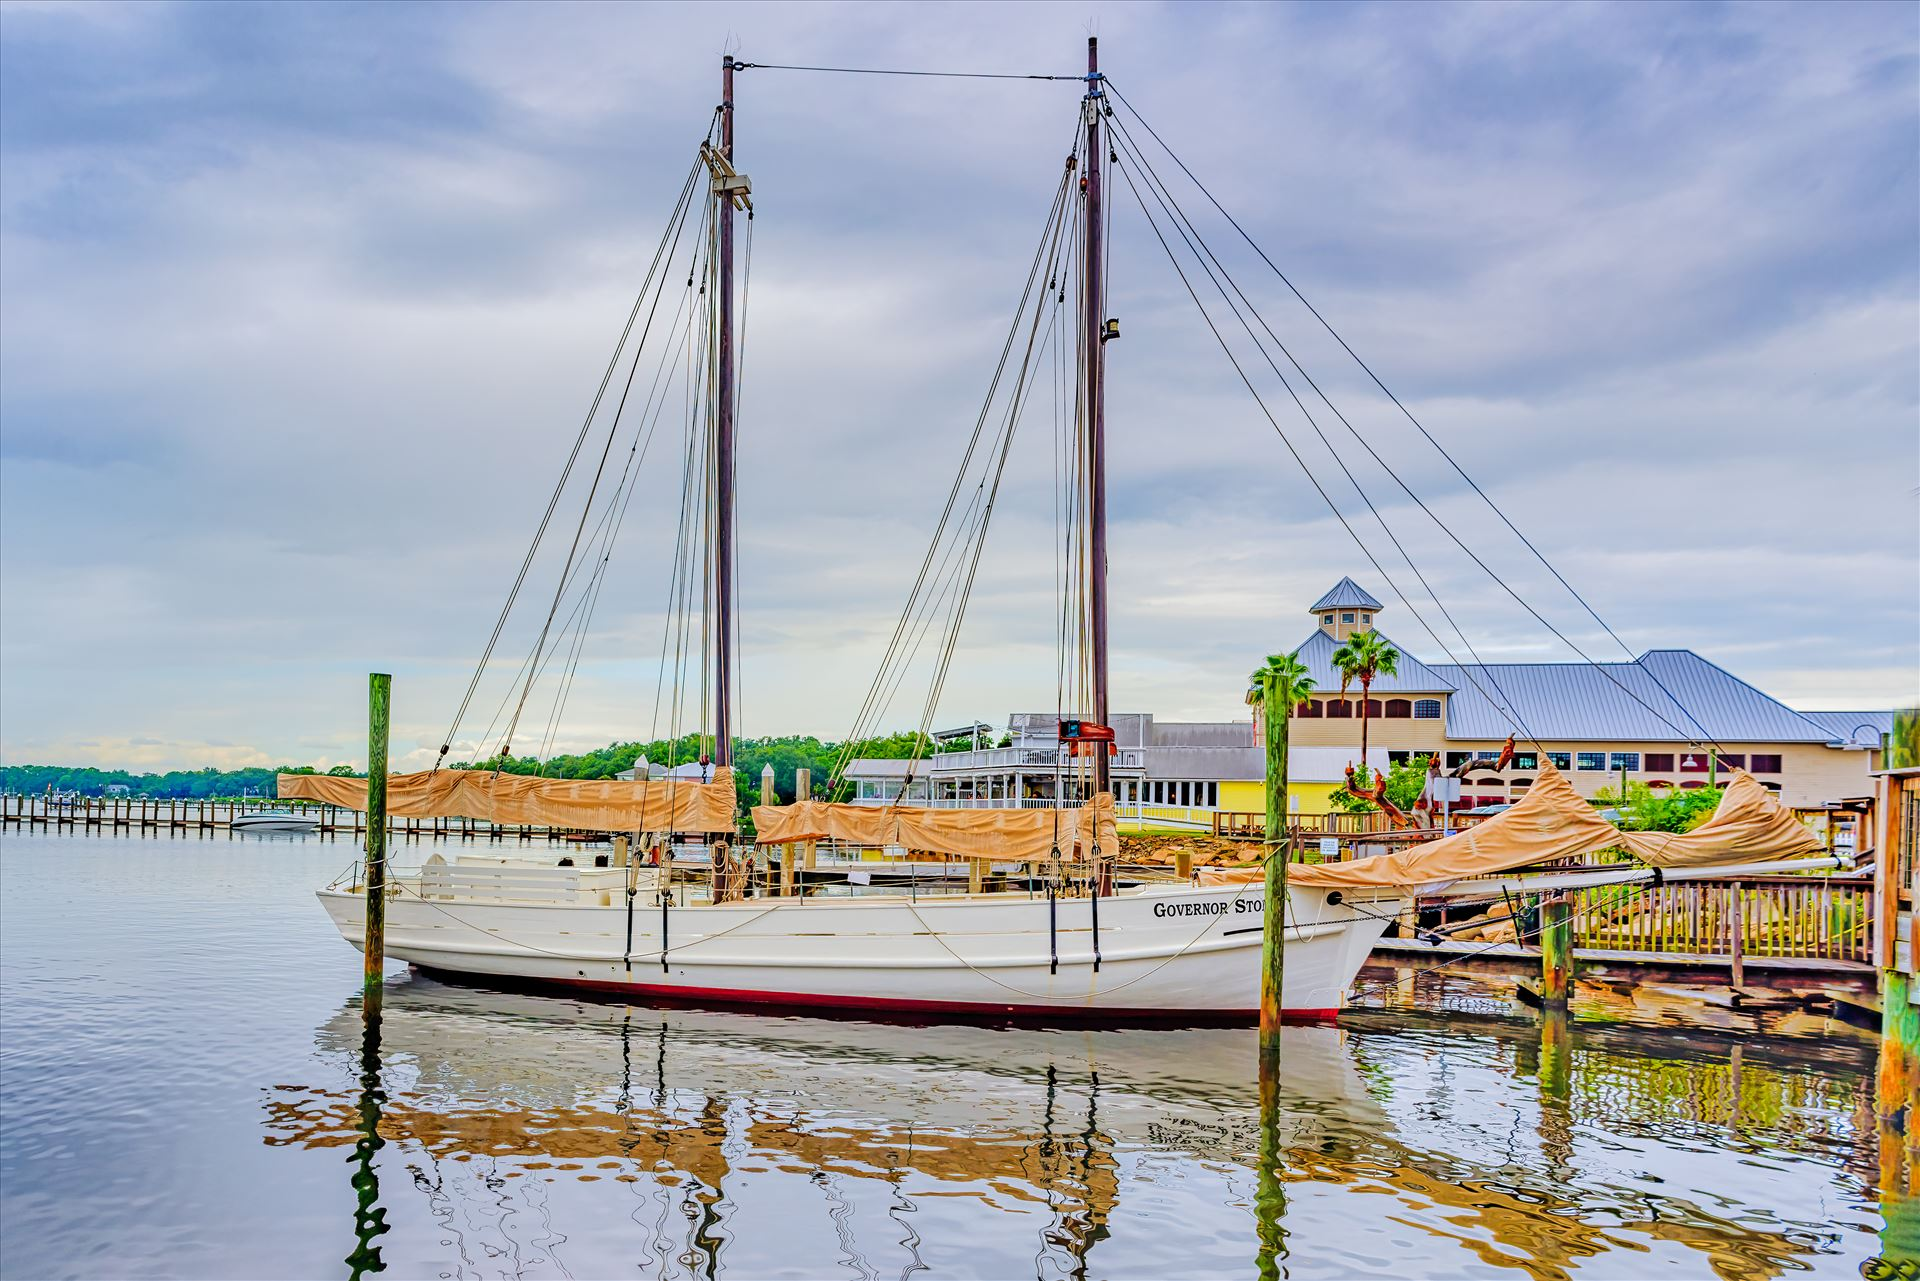 Governor Stone (schooner) Panama City, Florida, USA. September 16, 2016. Governor Stone is a historic schooner, built in 1877, in Pascagoula, Mississippi. In October 2018, Governor Stone capsized at her dock during Hurricane Michael. by Terry Kelly Photography